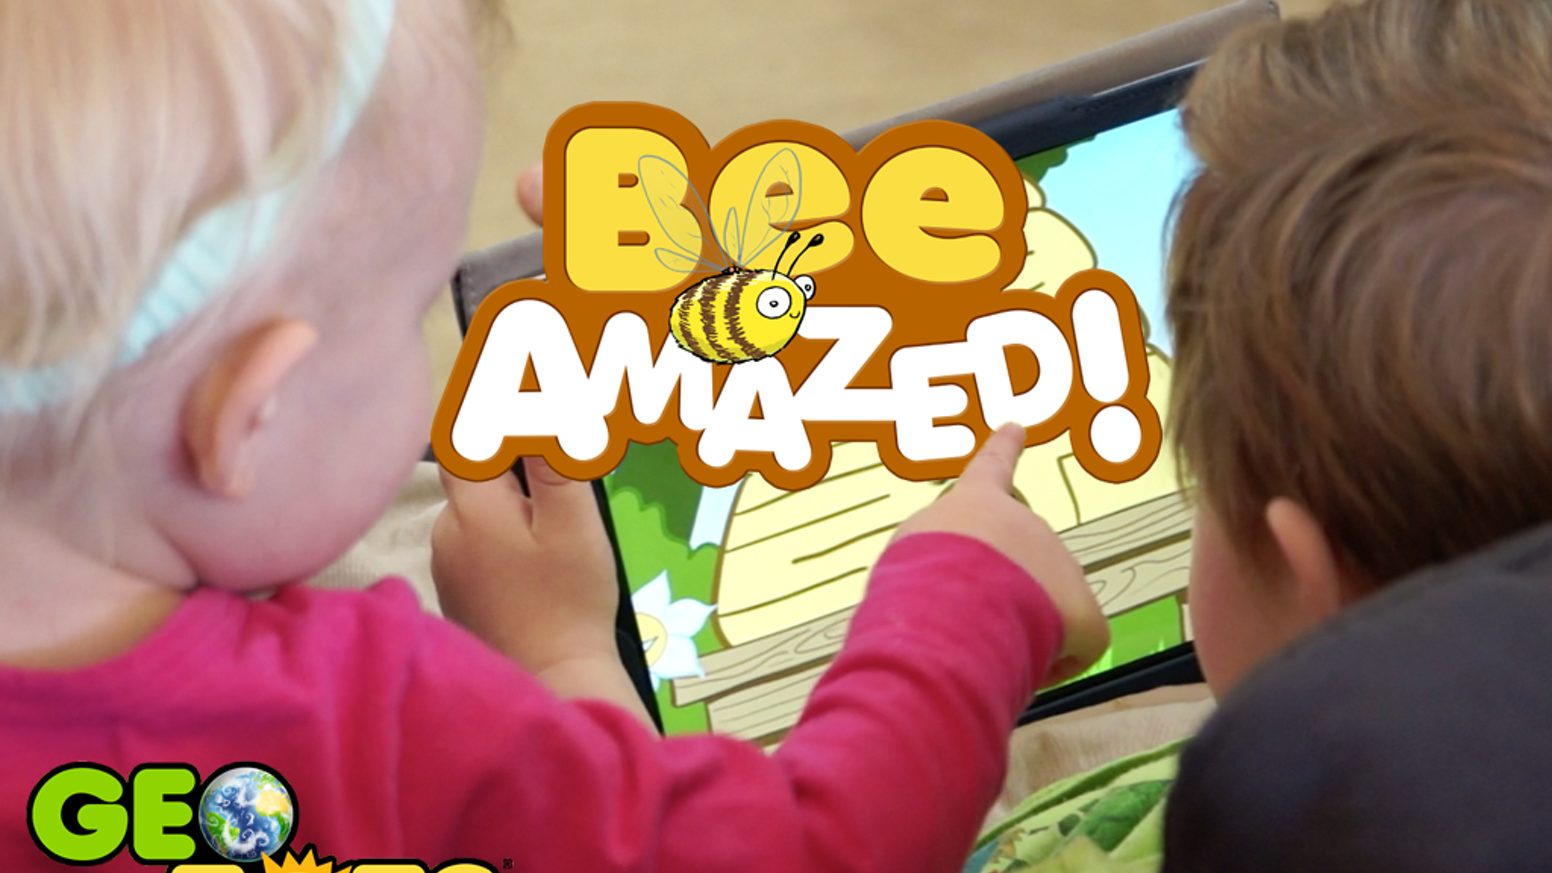 Bee Amazed! Geo Tots' eco-educational apps for tots ages 2-8.  Honey bee mazes teach Who's Who in the Hive!